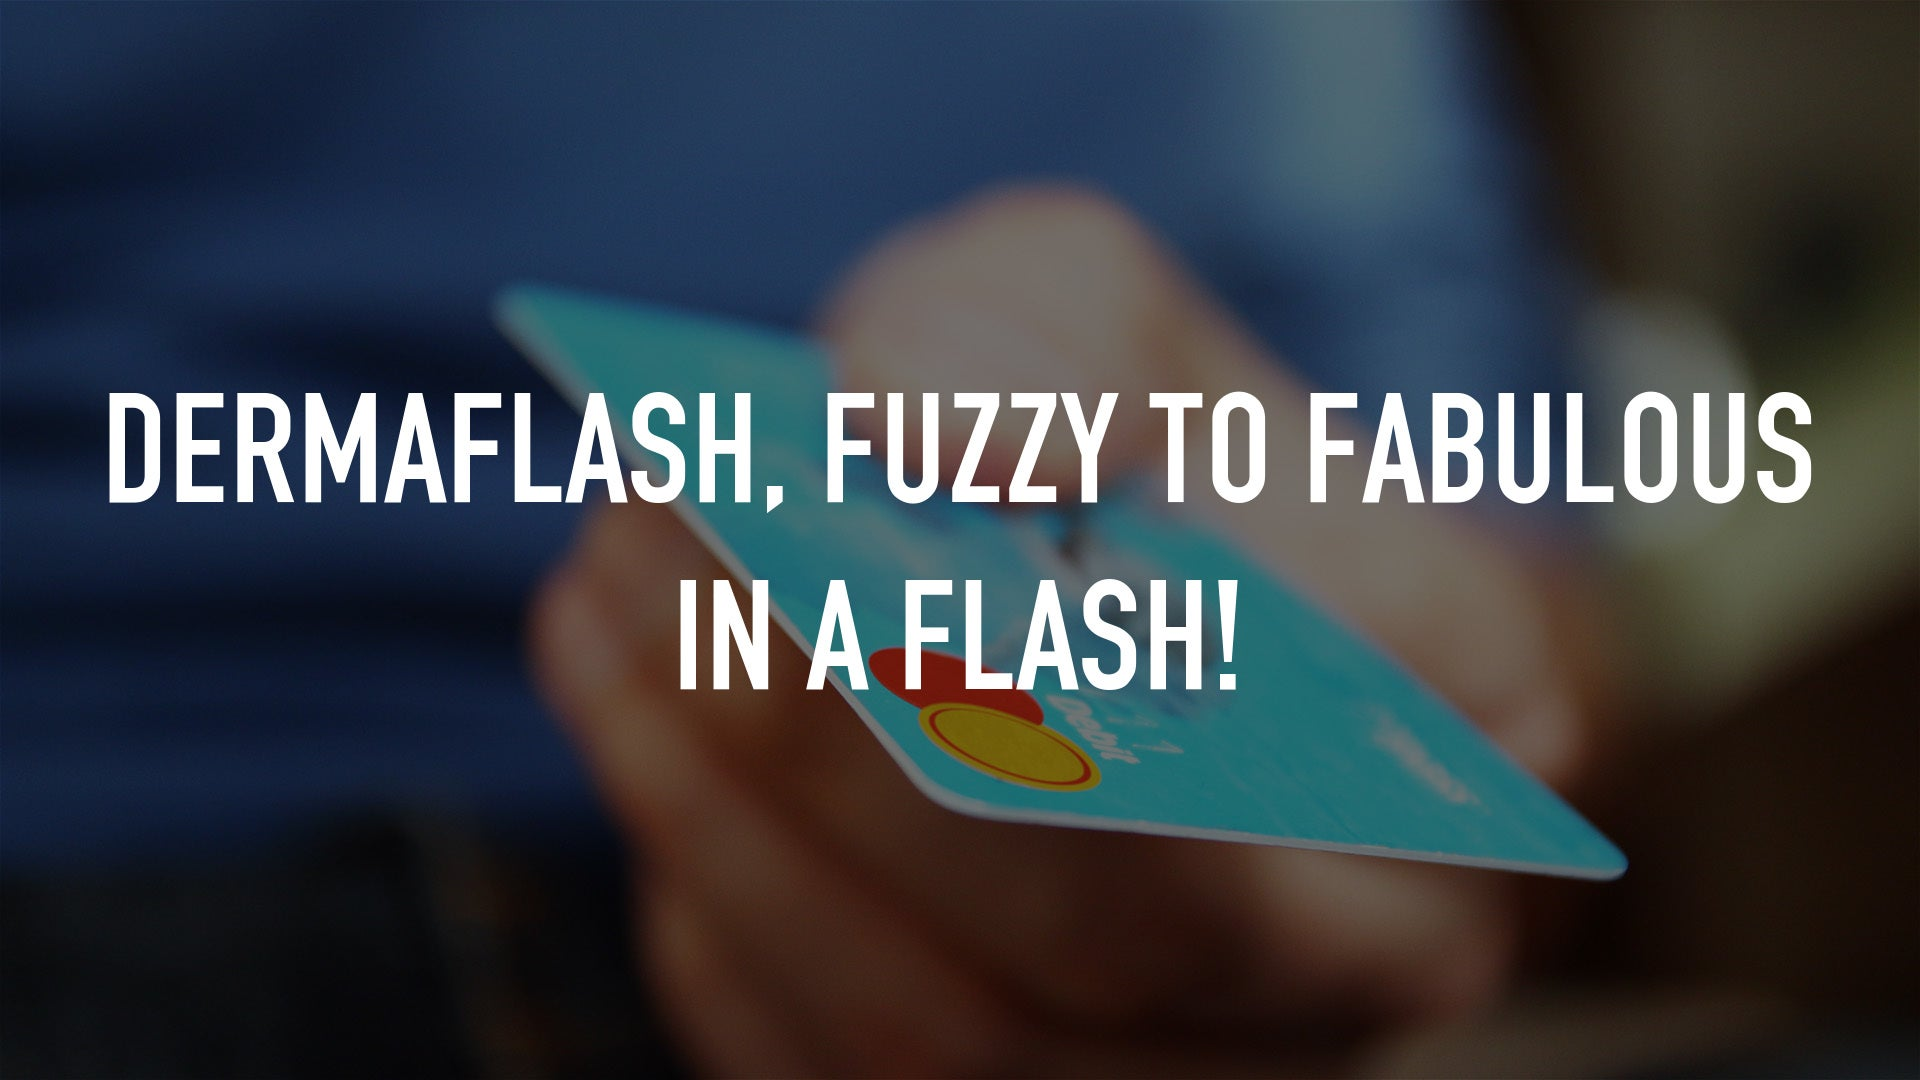 Dermaflash, Fuzzy To Fabulous In A Flash!